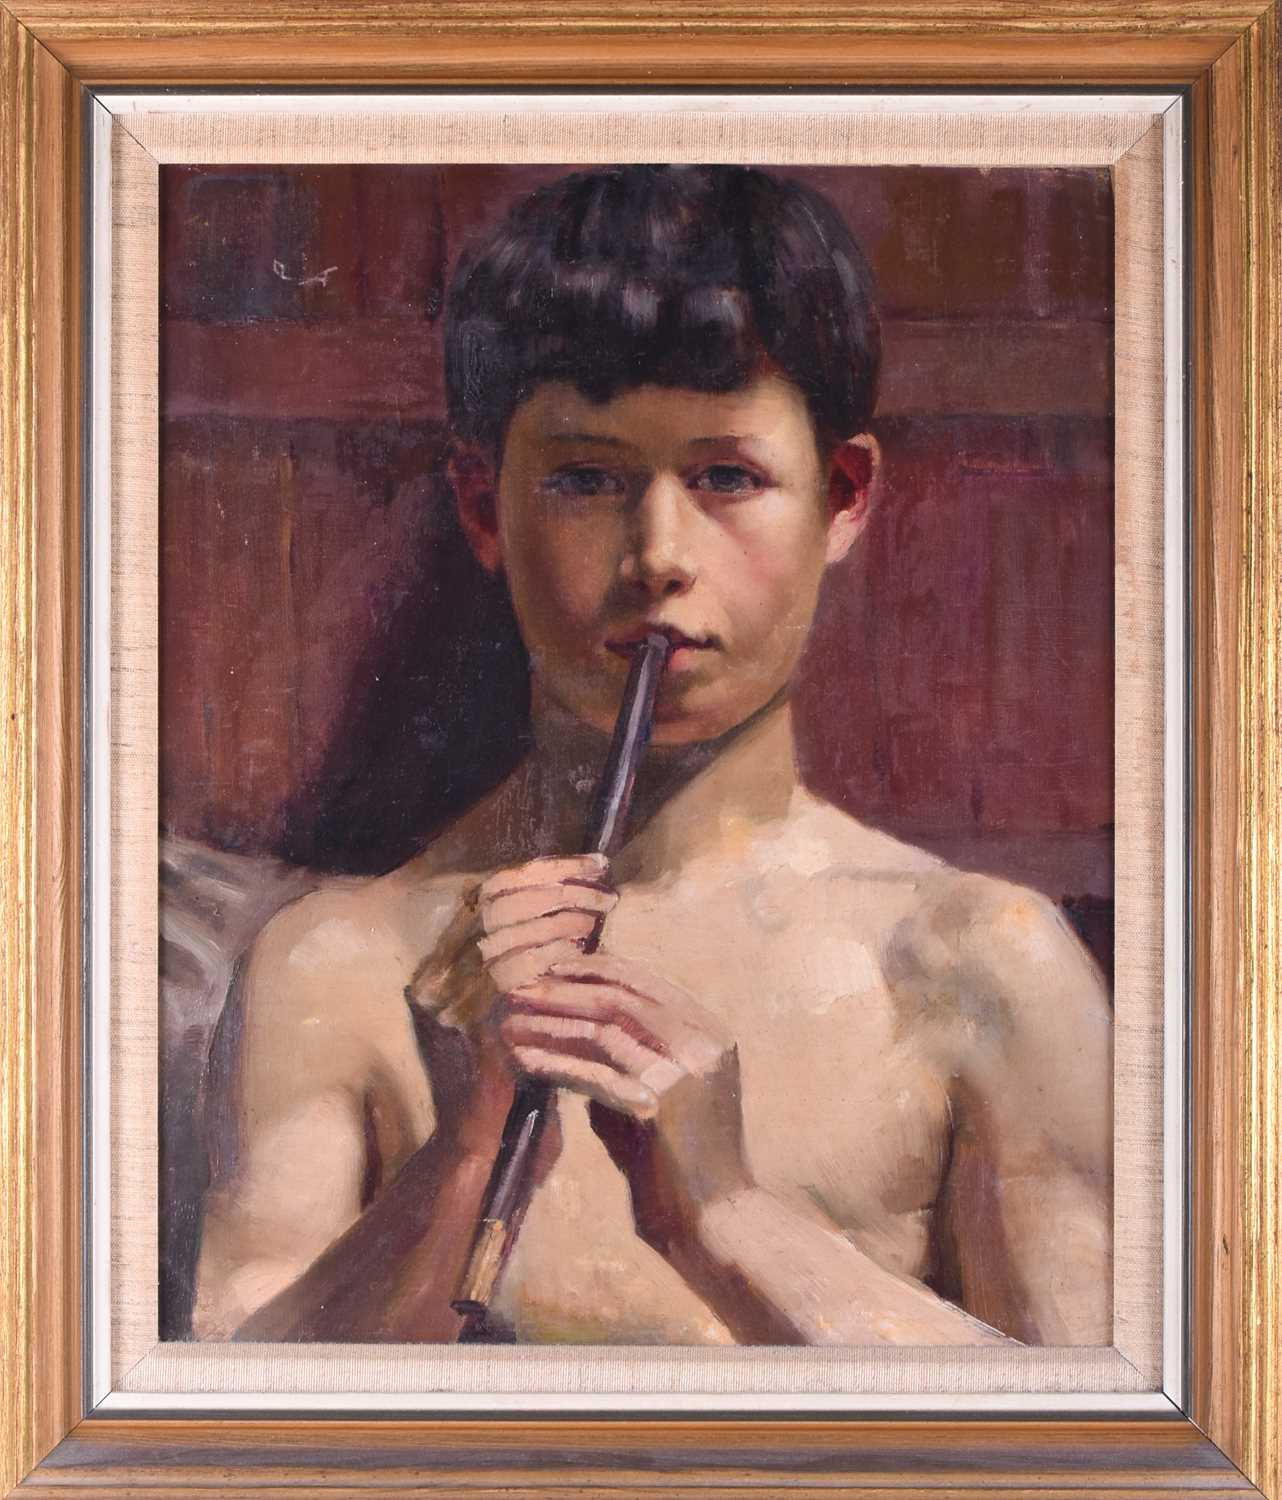 Lot 15 - Attributed to Eduardo Matania (1847-1929) Italian, a portrait of a semi-nude young boy playing the